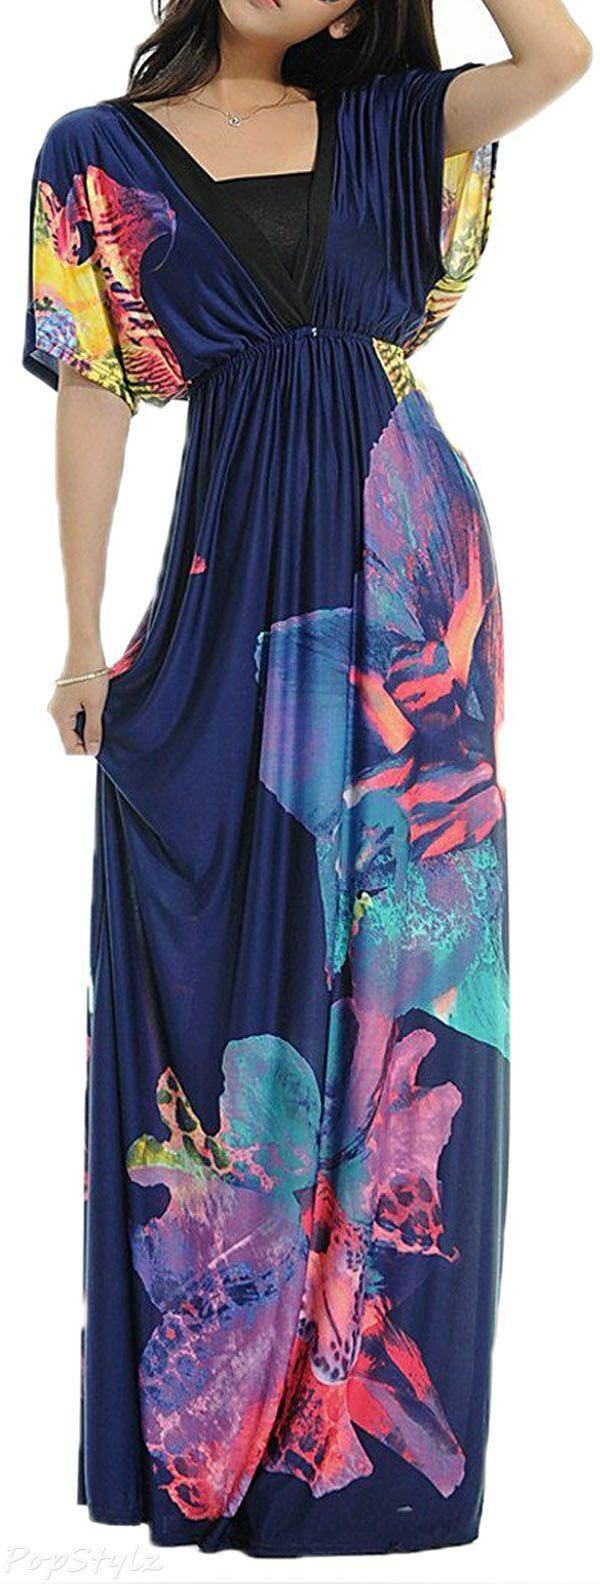 like the dress minus the sleeves- Cap Sleeve Casual Maxi Dress